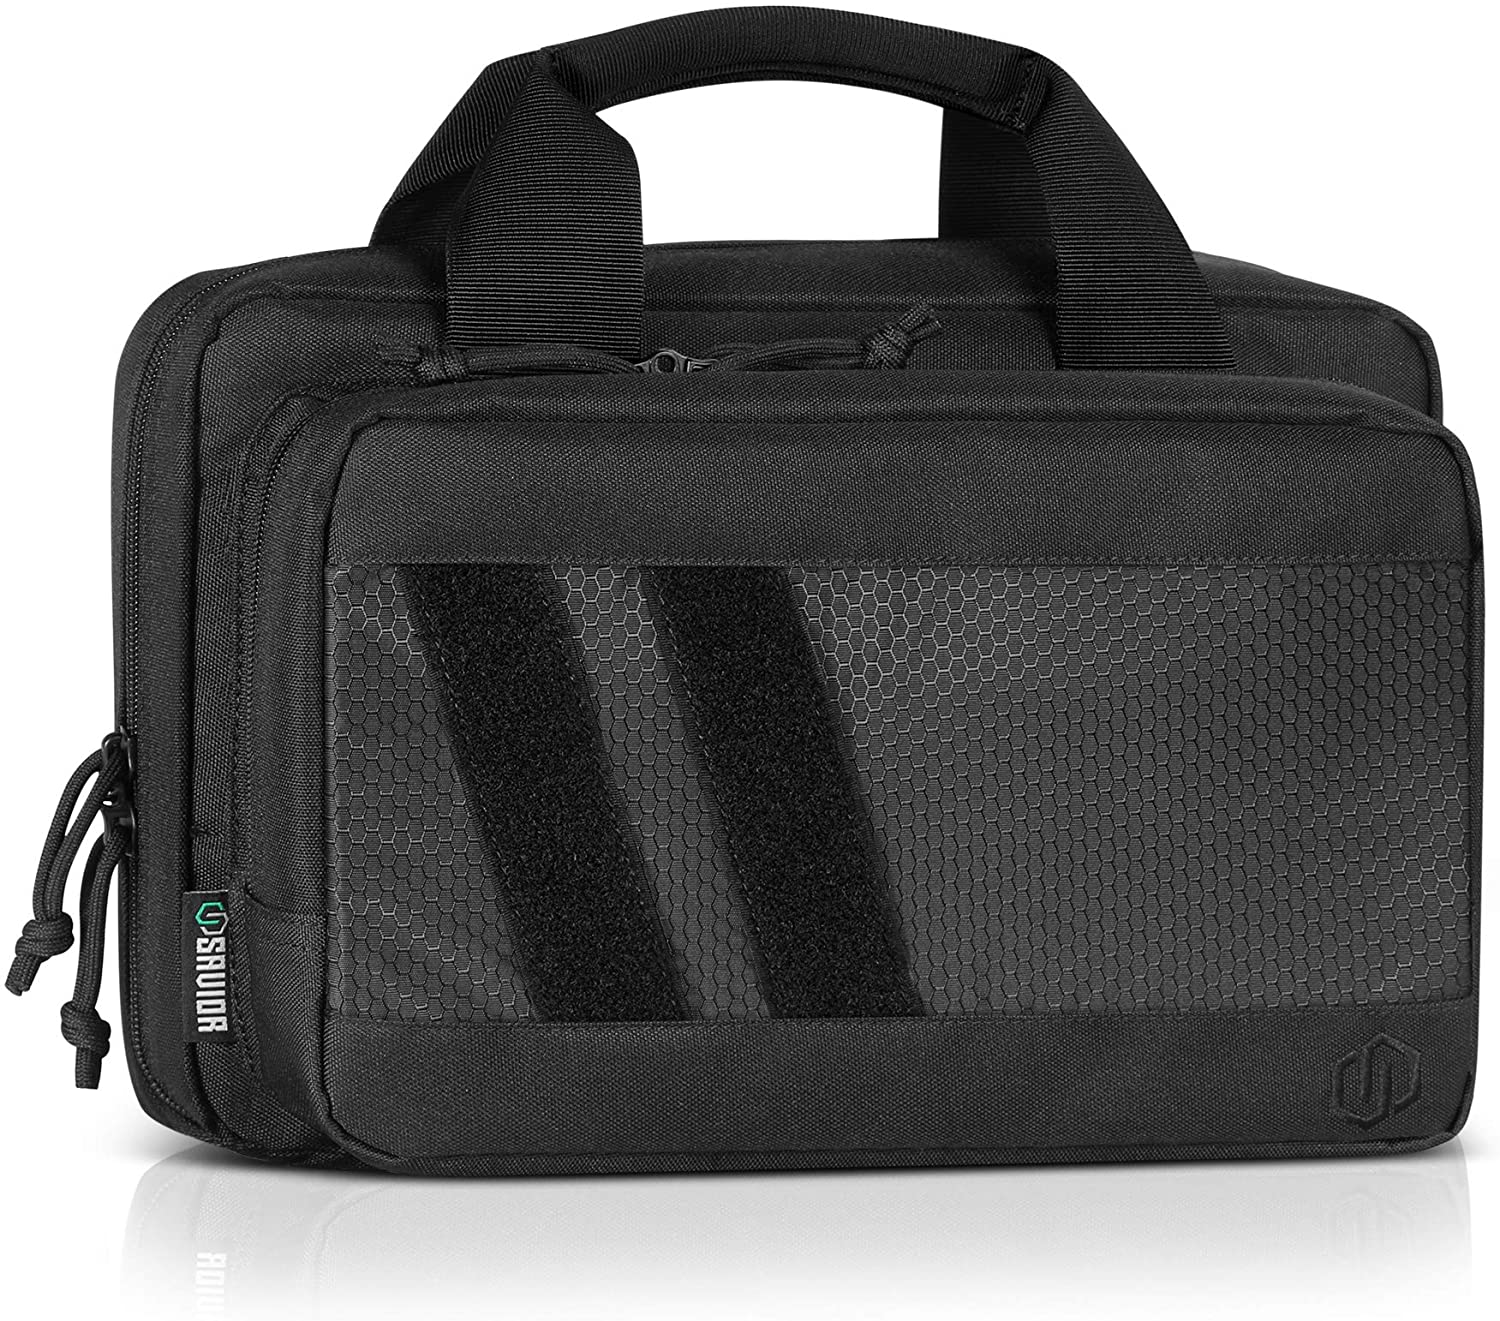 Savior Equipment Specialist Series Tactical Double Handgun Firearm Case Discreet Pistol Bag, Lockable Compartment, Additional Magazine Storage Slots